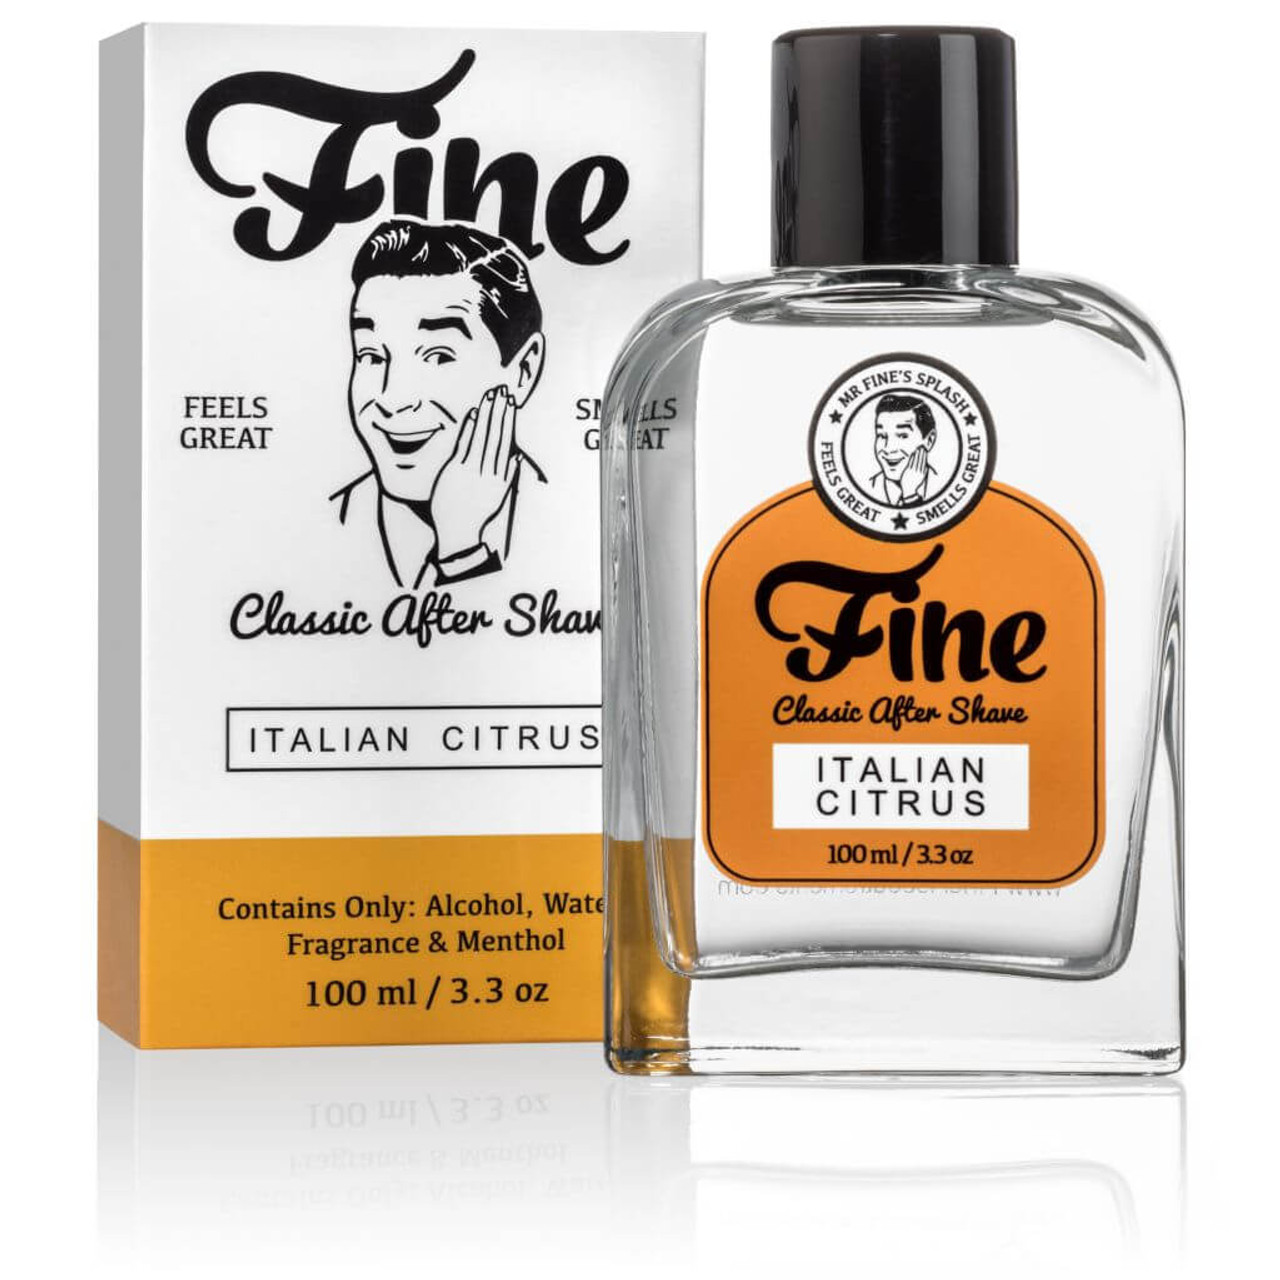 Fine Aftershave Italian Citrus